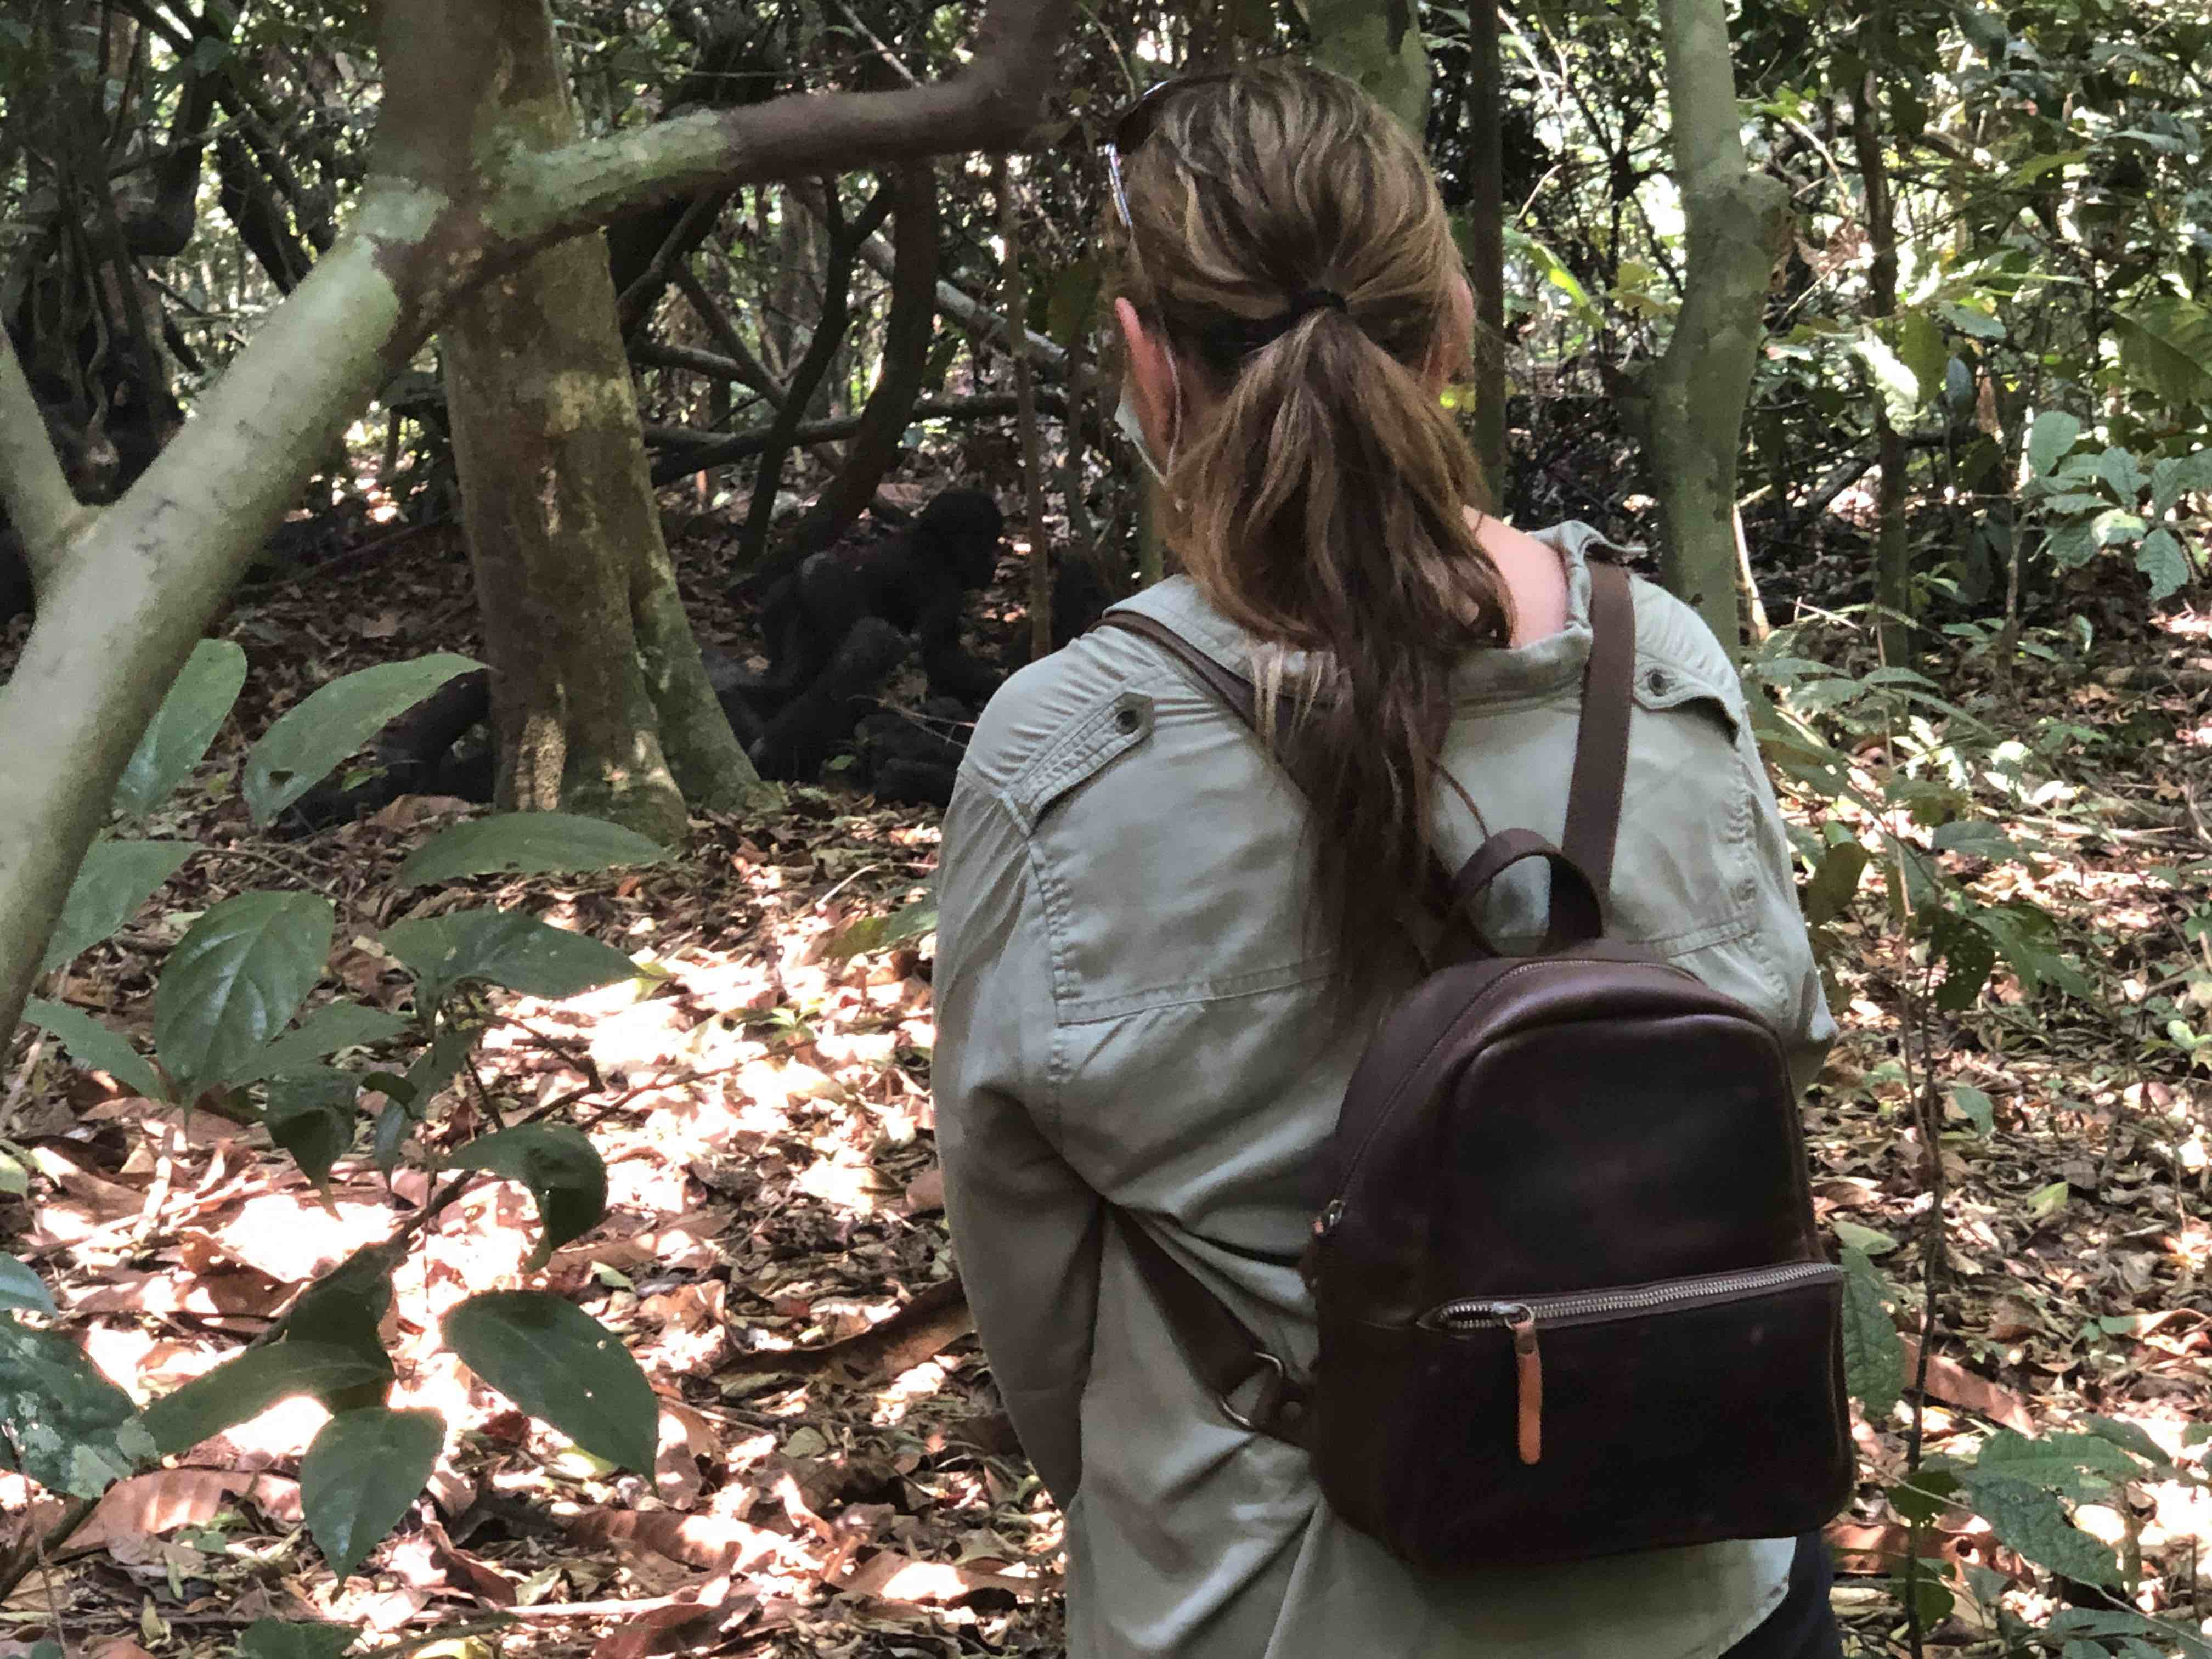 small leather women's backpack with a gorilla in front of the lady